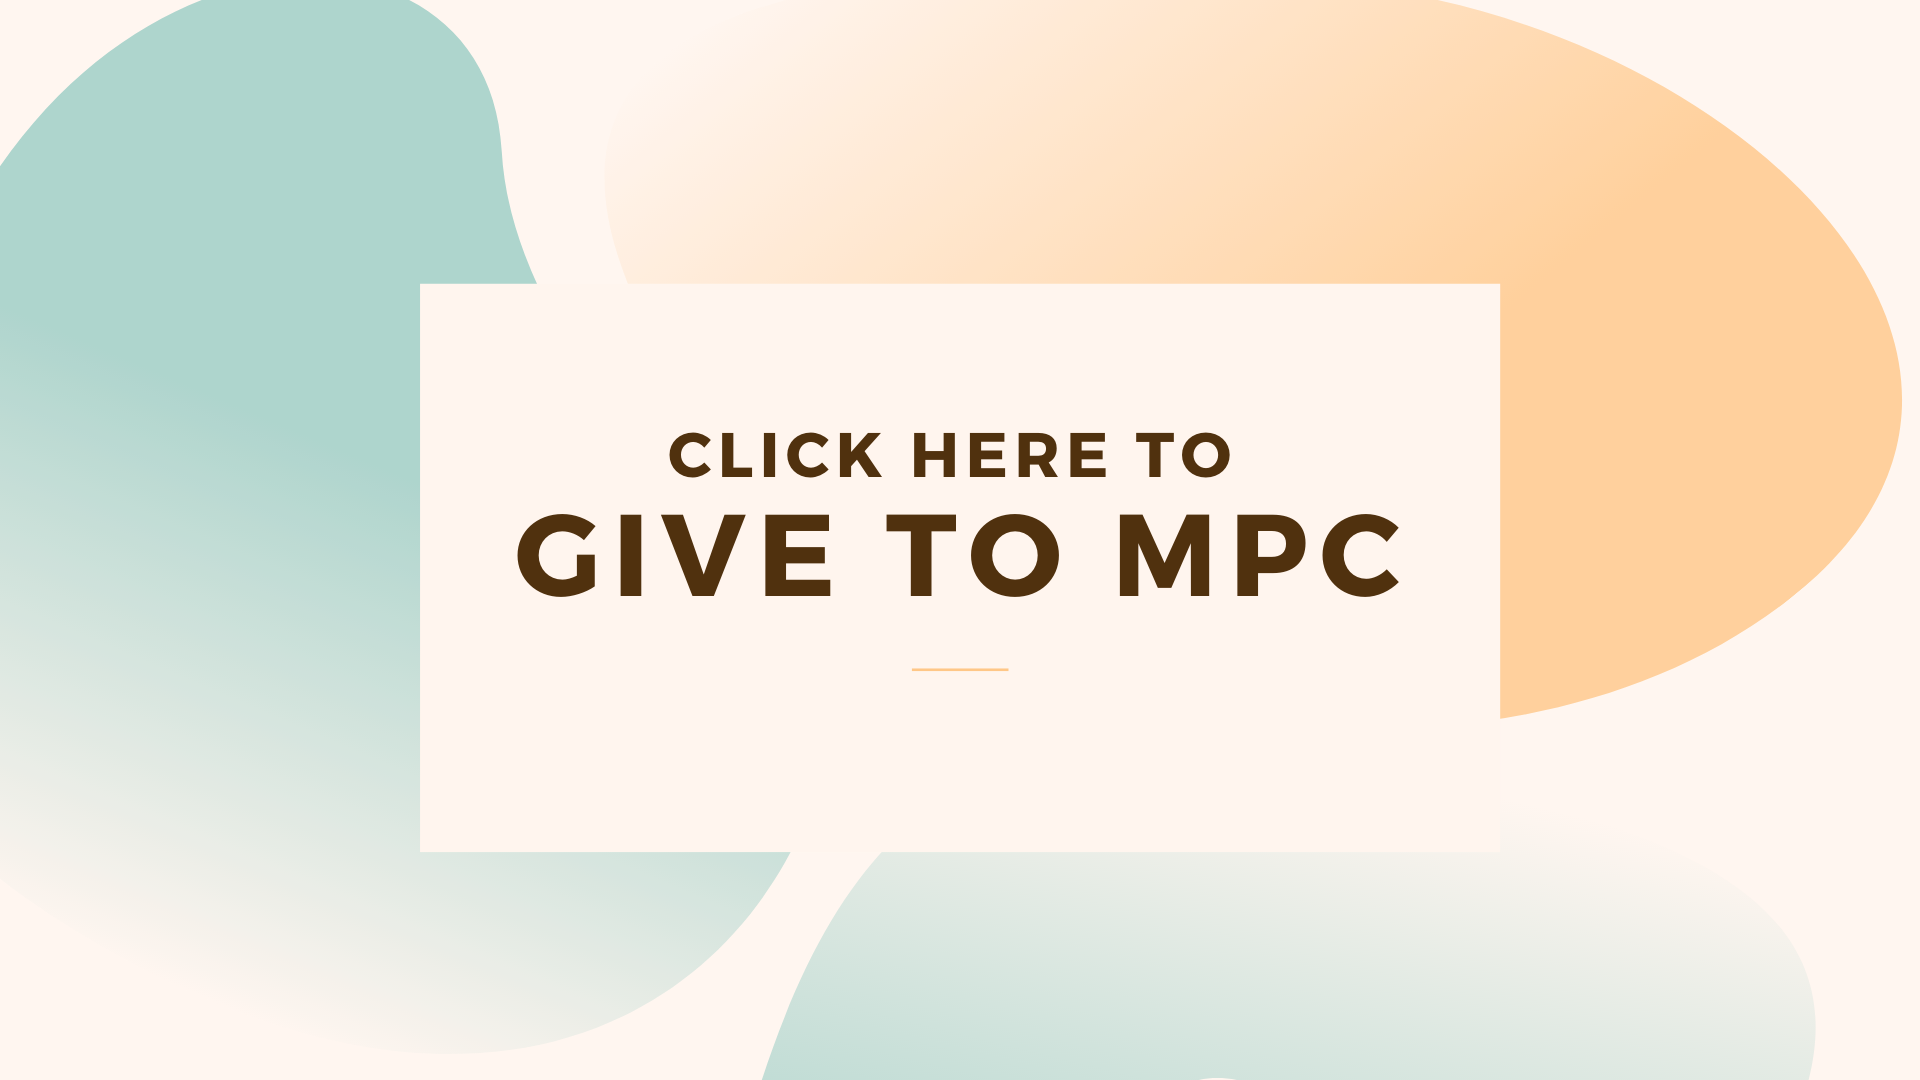 Give to MPC - 2